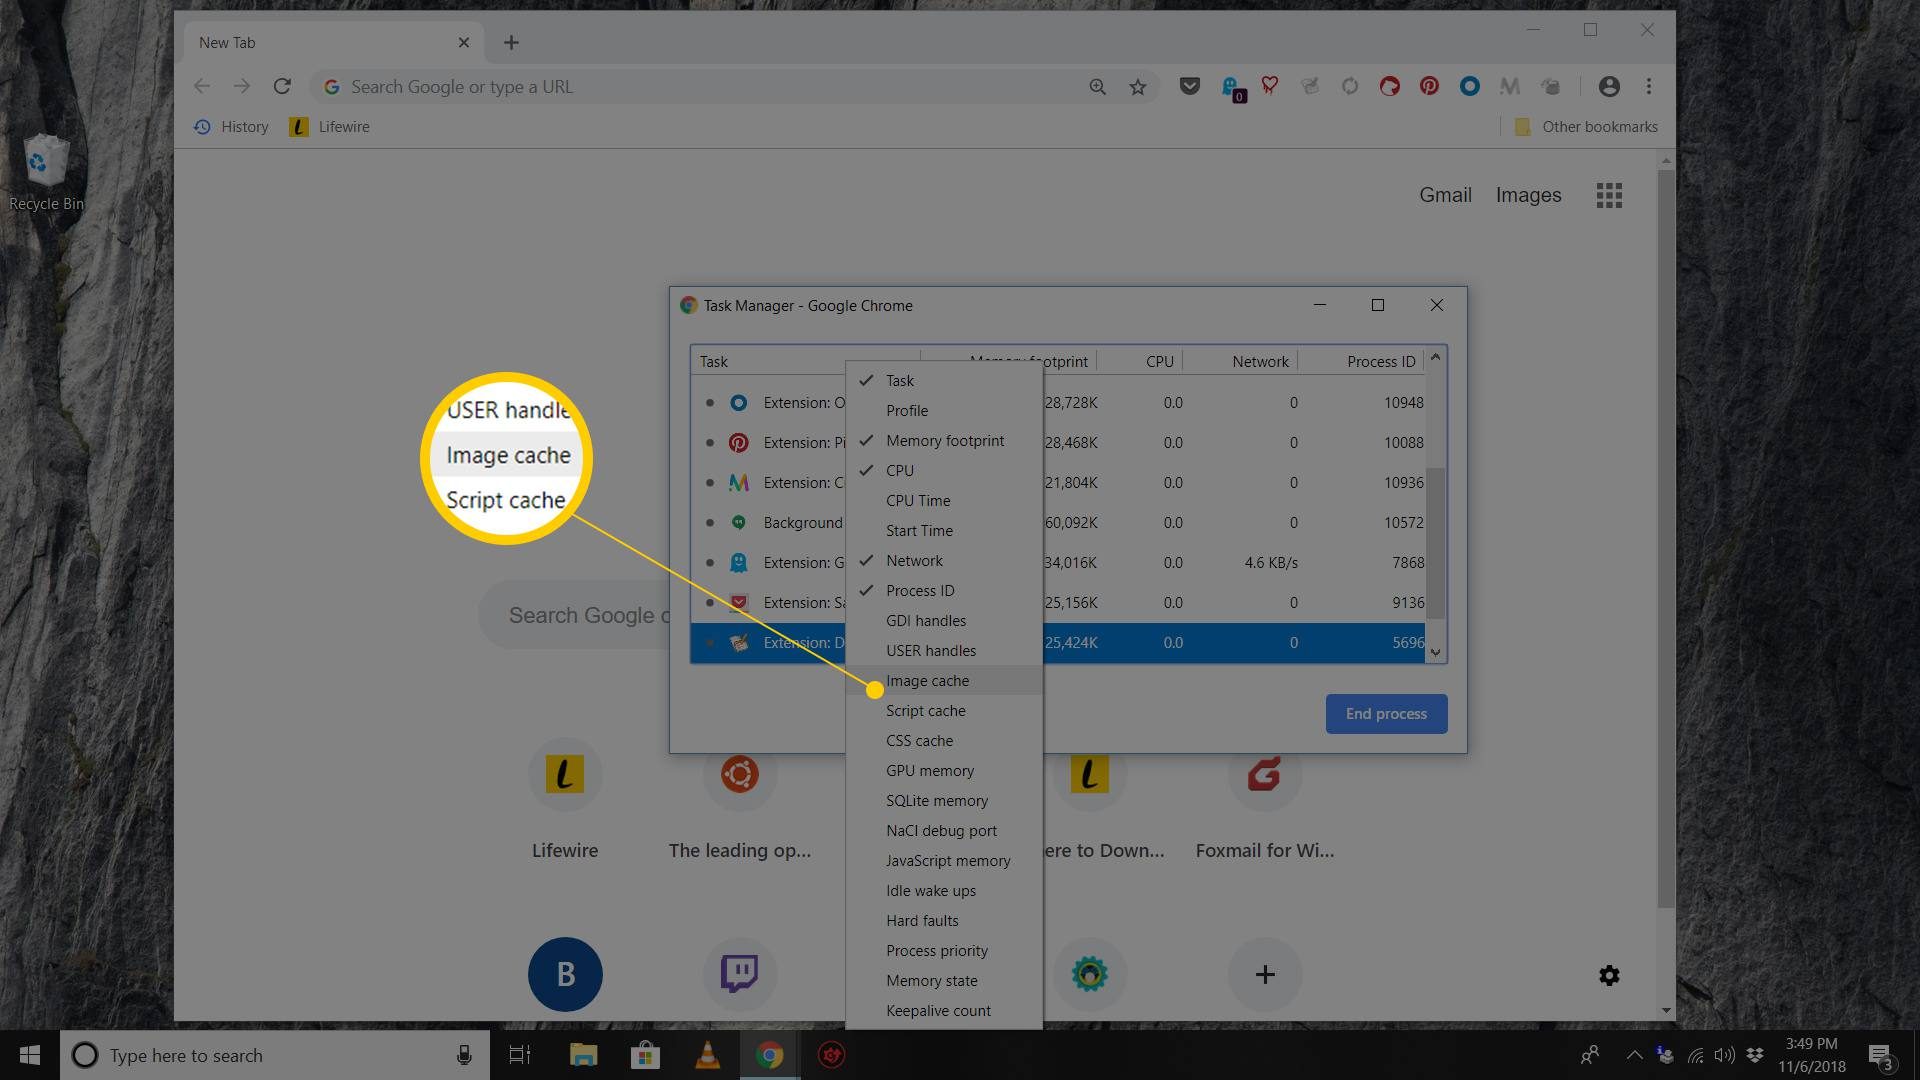 How to Use the Google Chrome Task Manager